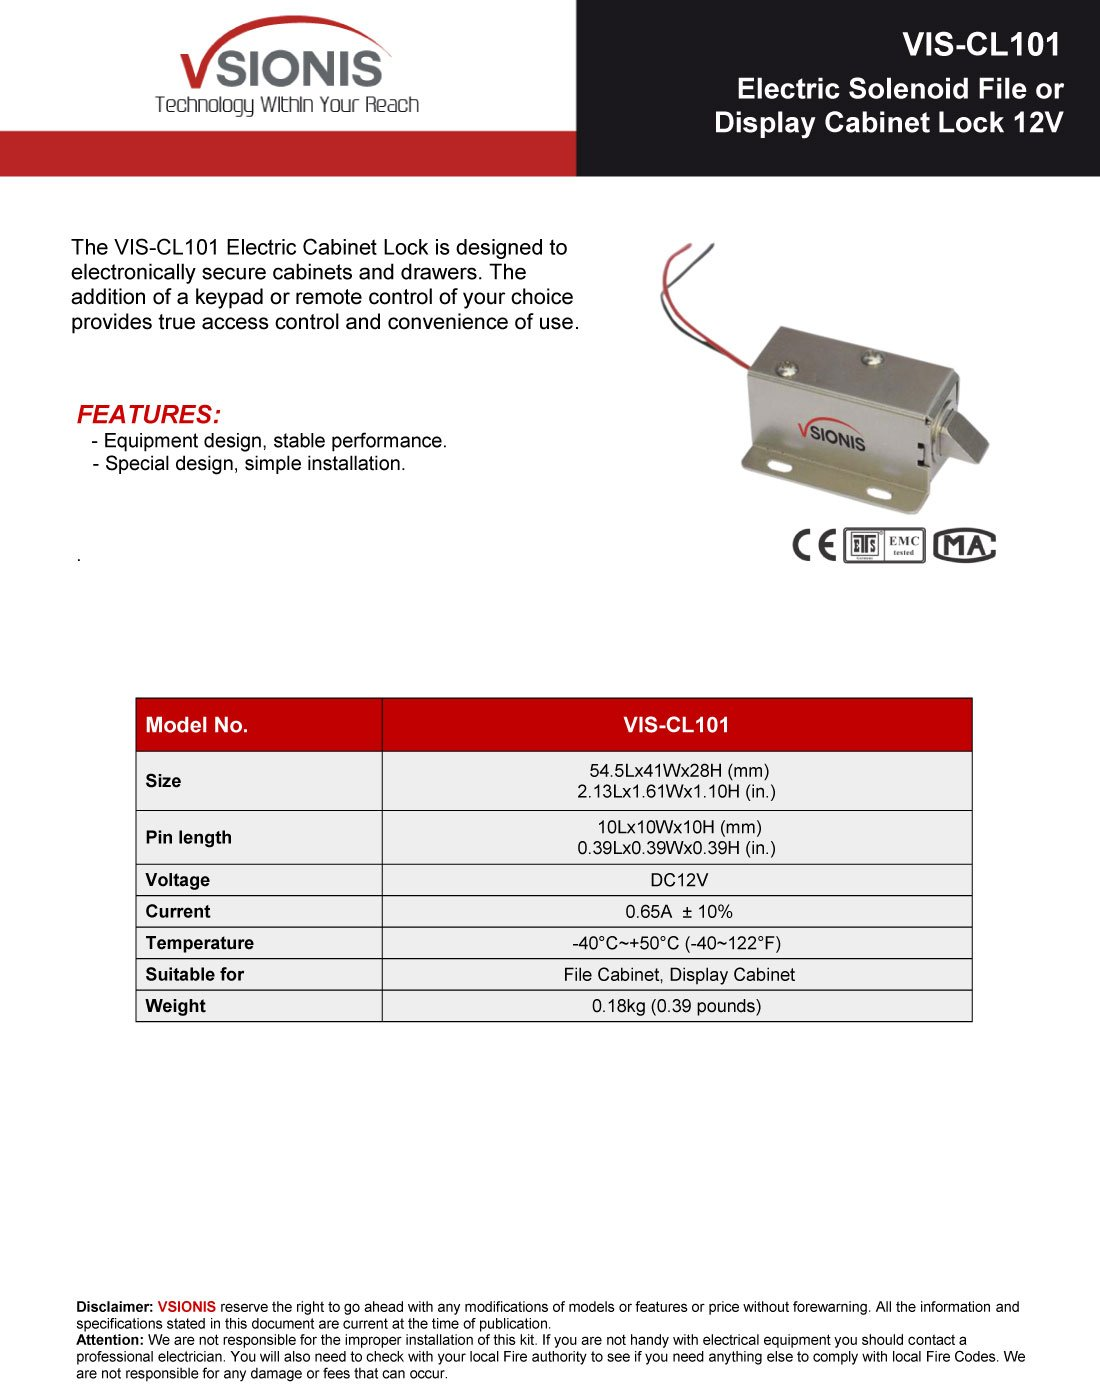 FPC-5397 Visionis VIS-CL101 Electric Solenoid File or Display Cabinet Lock 12v with Power Supply